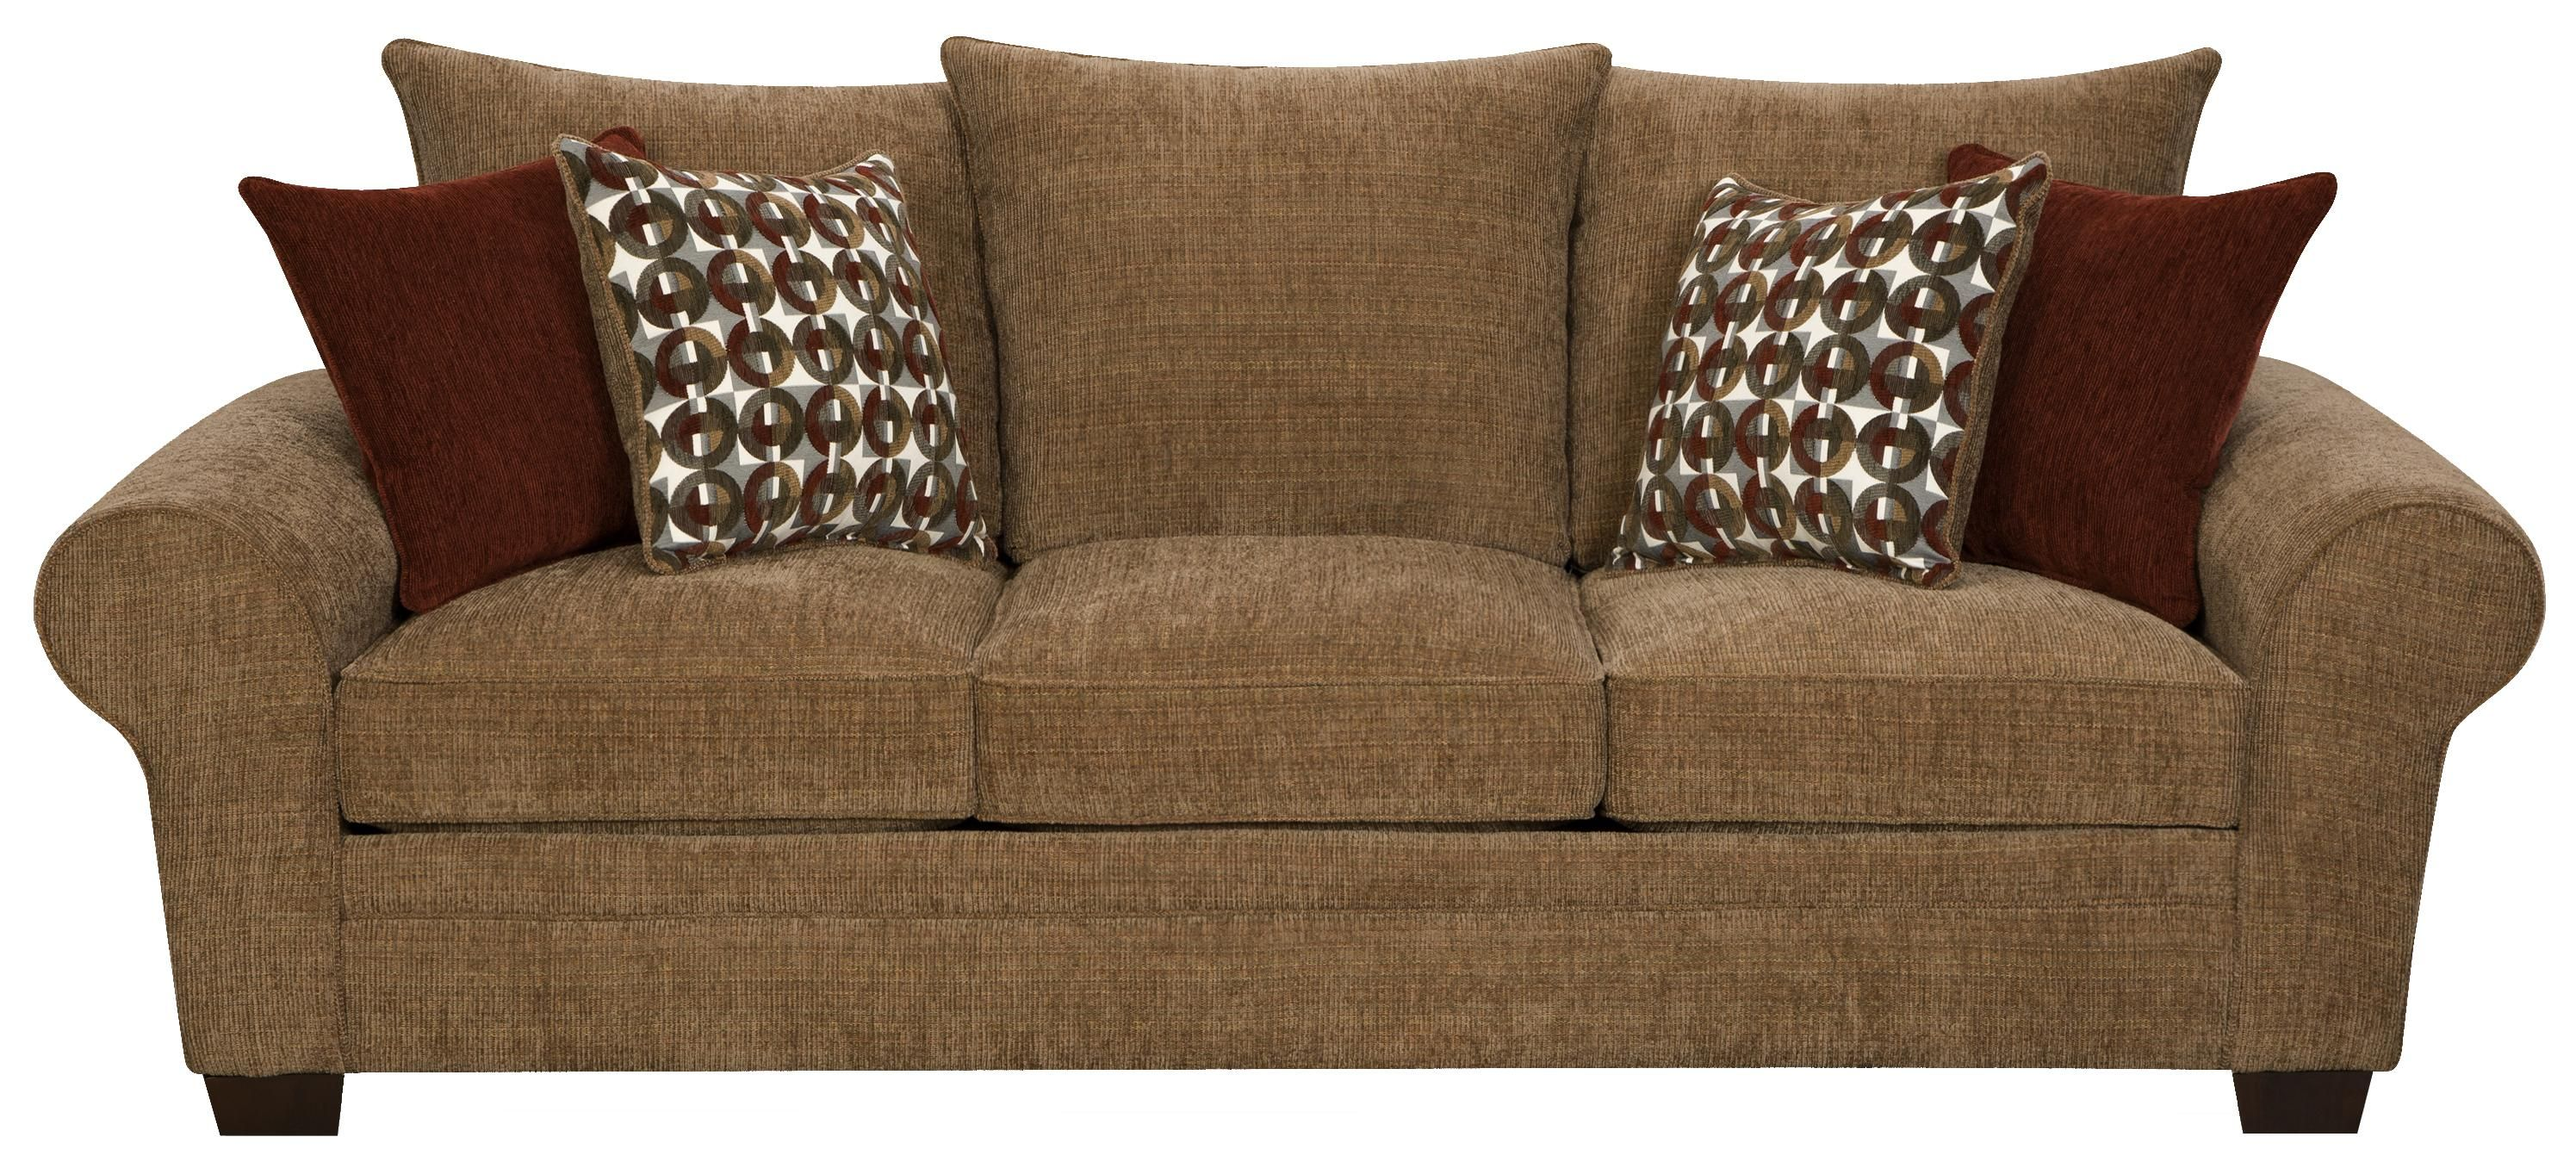 5460 Resort Harvest Sofa by Corinthian $599 99 Great American Home